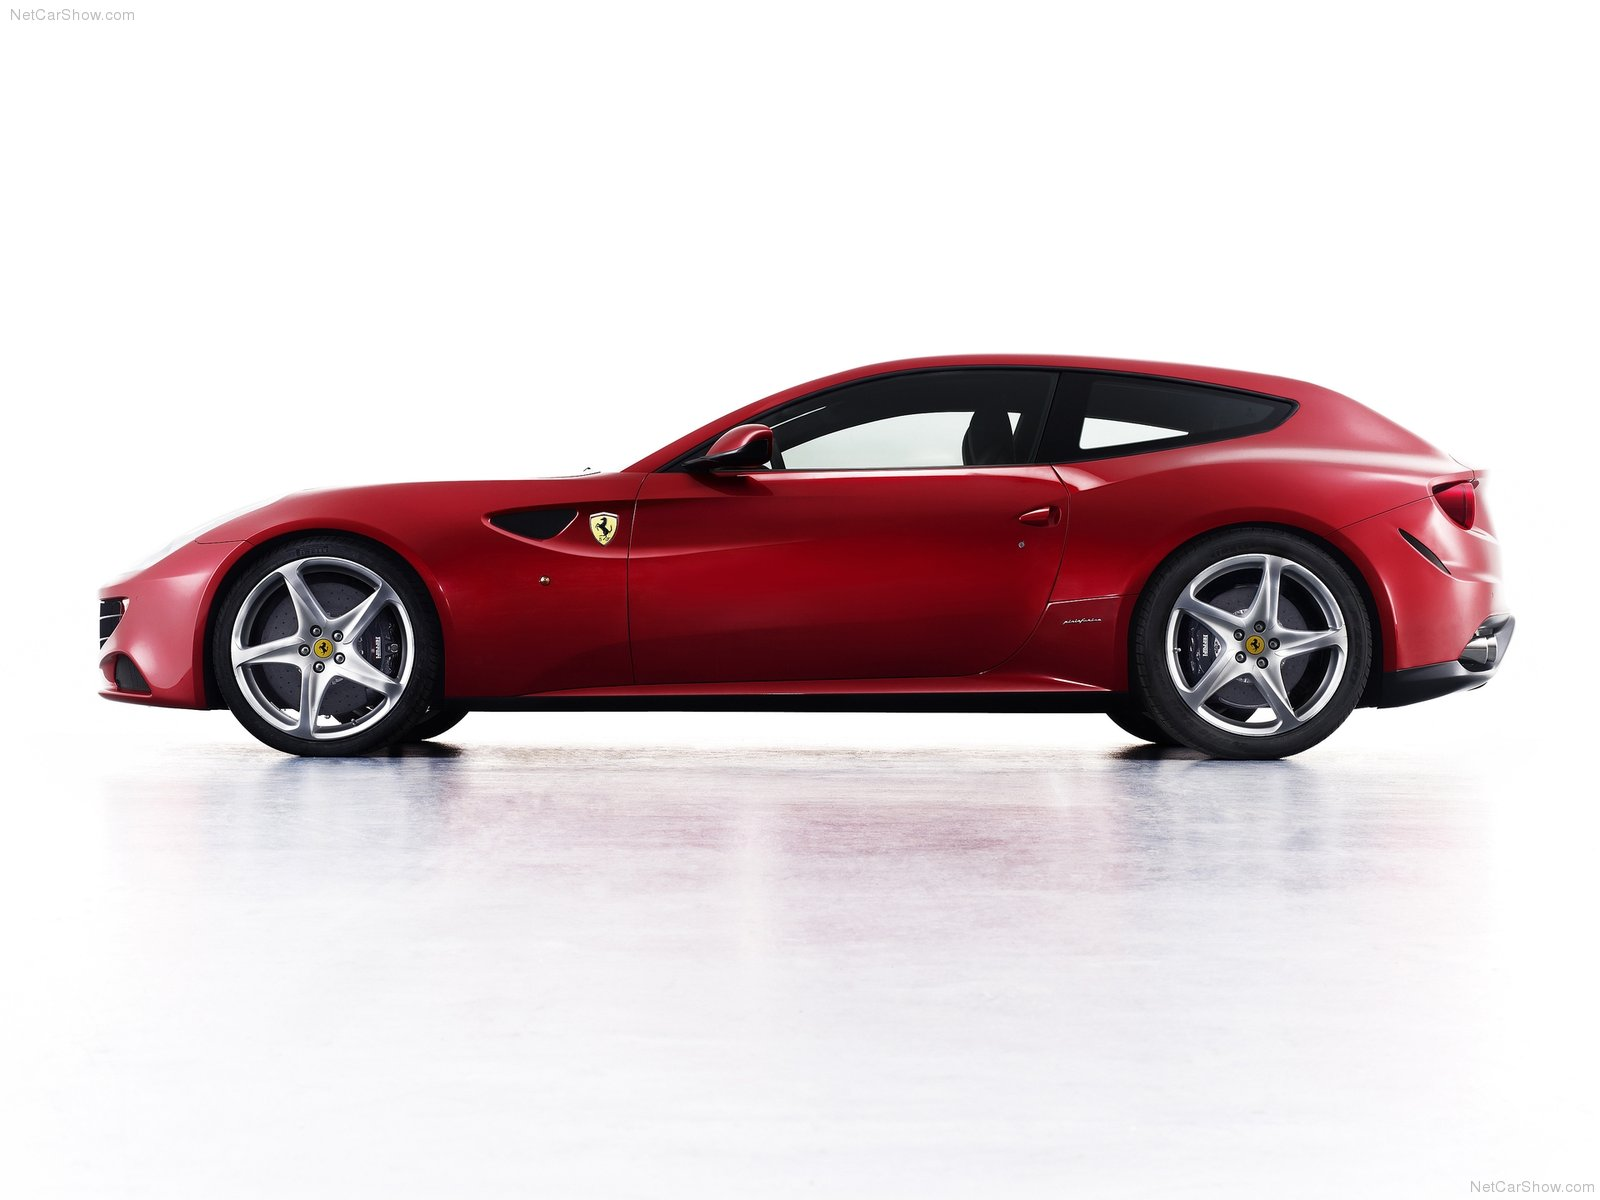 New Cars Amp Bikes Ferrari Ff Review Technical Specifications And Official Photos